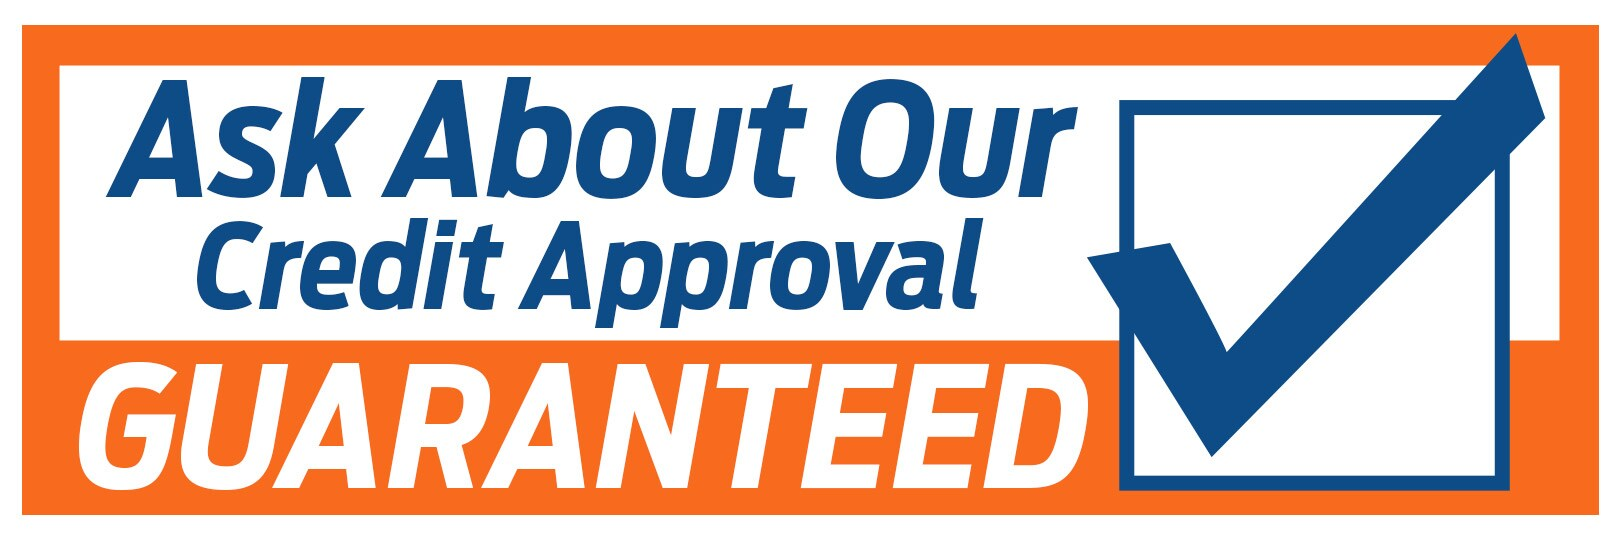 Dahl Ford Lincoln Credit Approval Guaranteed in Onalaksa, Wisconsin